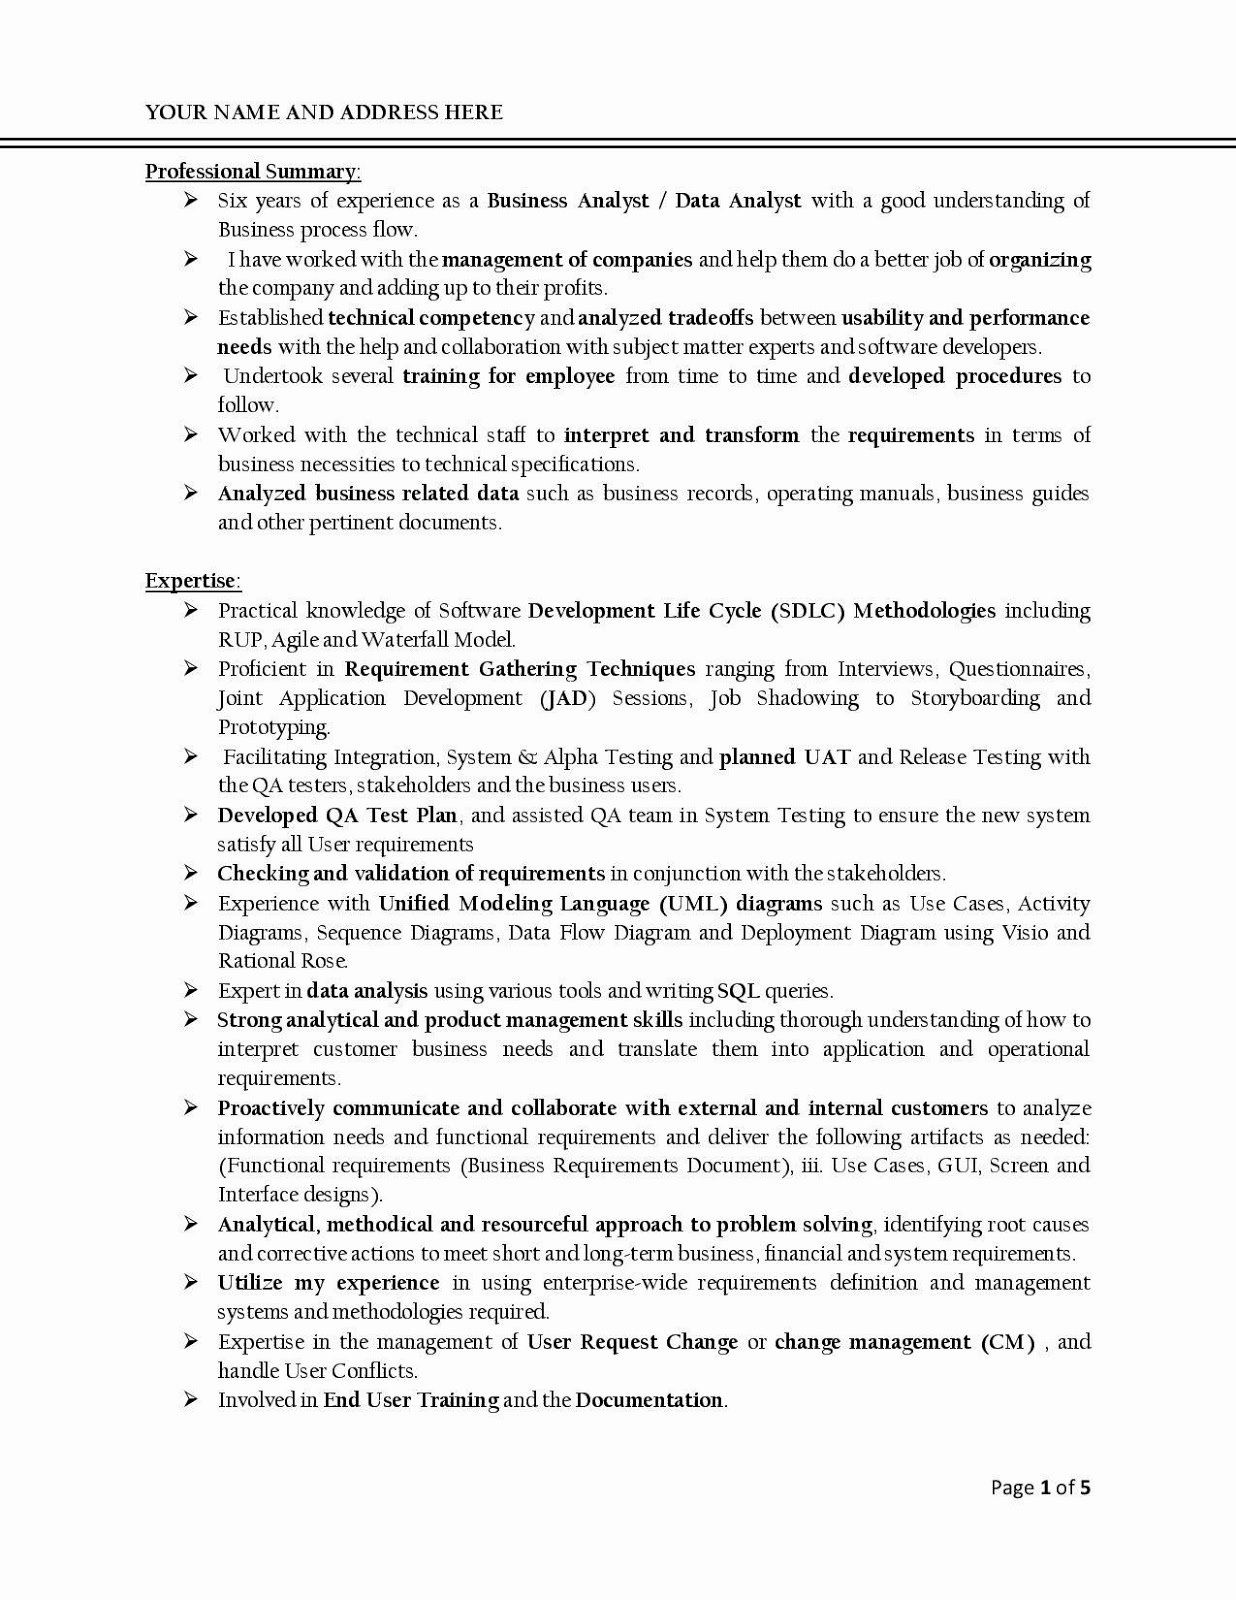 40 sample business analyst resume in 2020 business